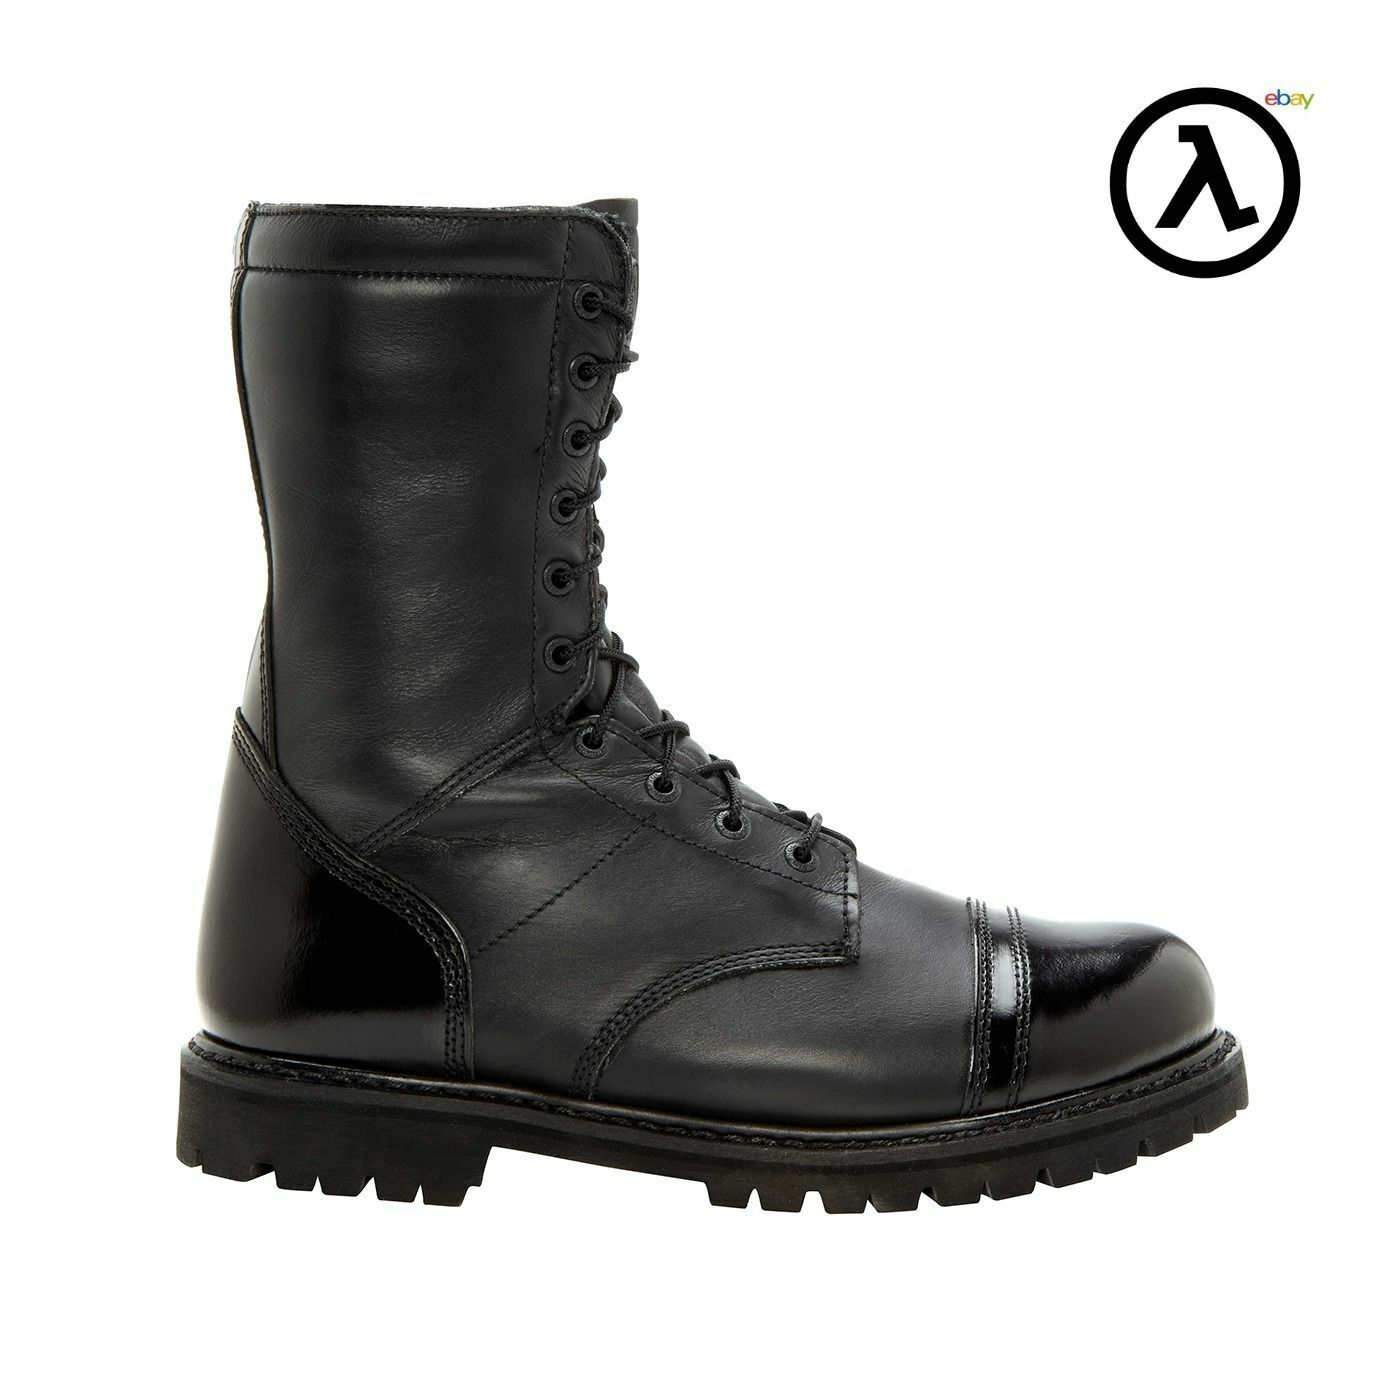 ROCKY WATERPROOF 200G INSULATED SIDE ZIPPER JUMP BOOTS FQ0002095 * ALL SIZES